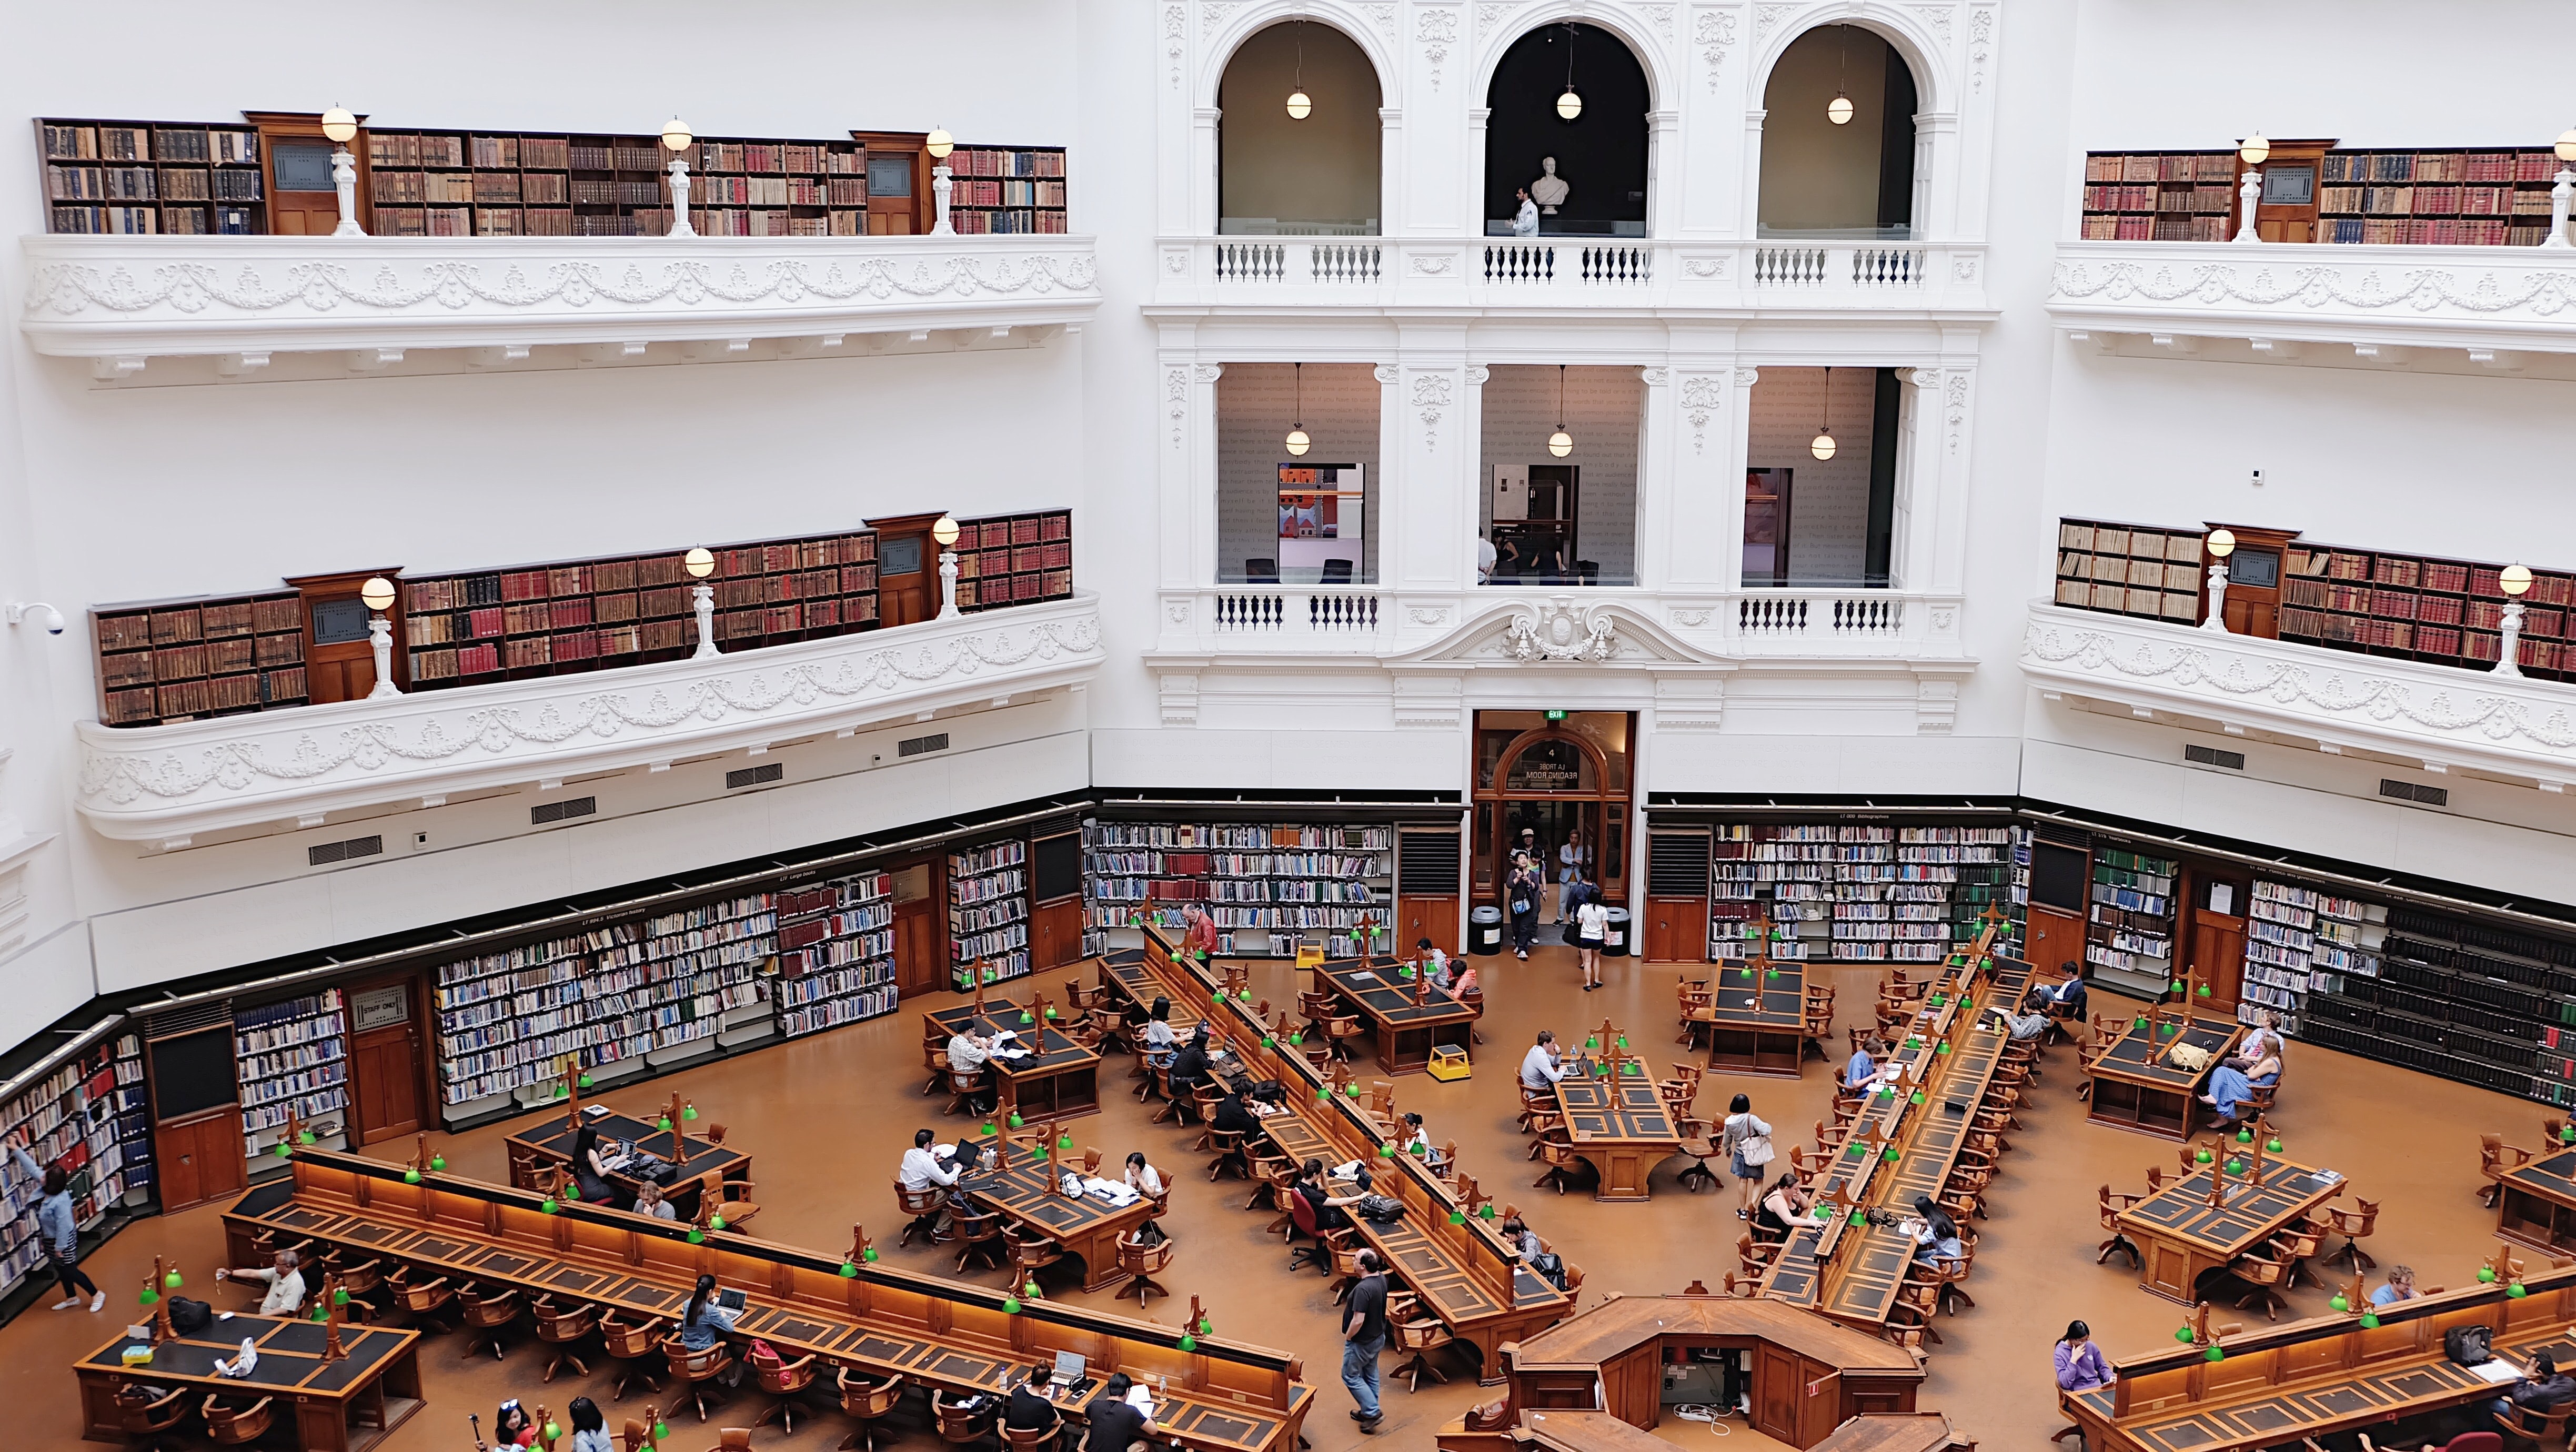 Interior view of the State Library of Victoria with bookcases and people sitting at desks